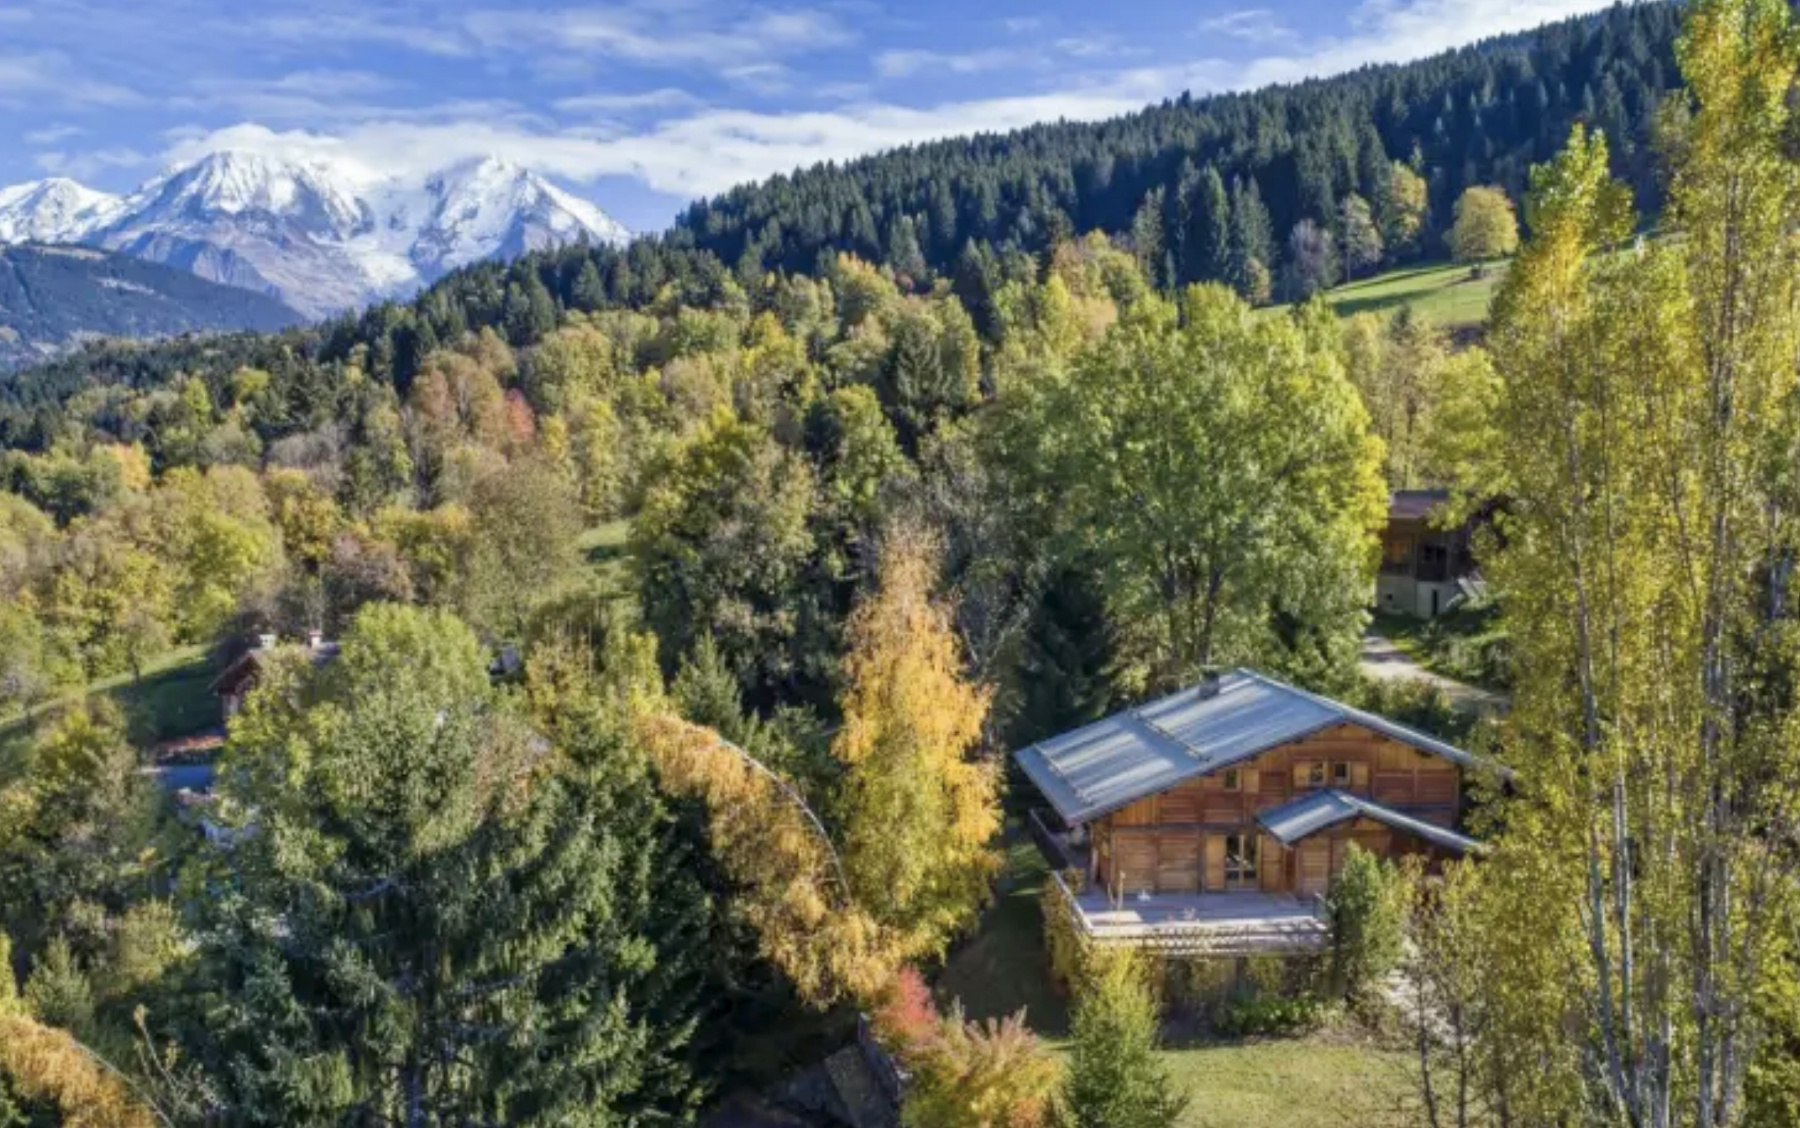 Chalet with views in French Alps